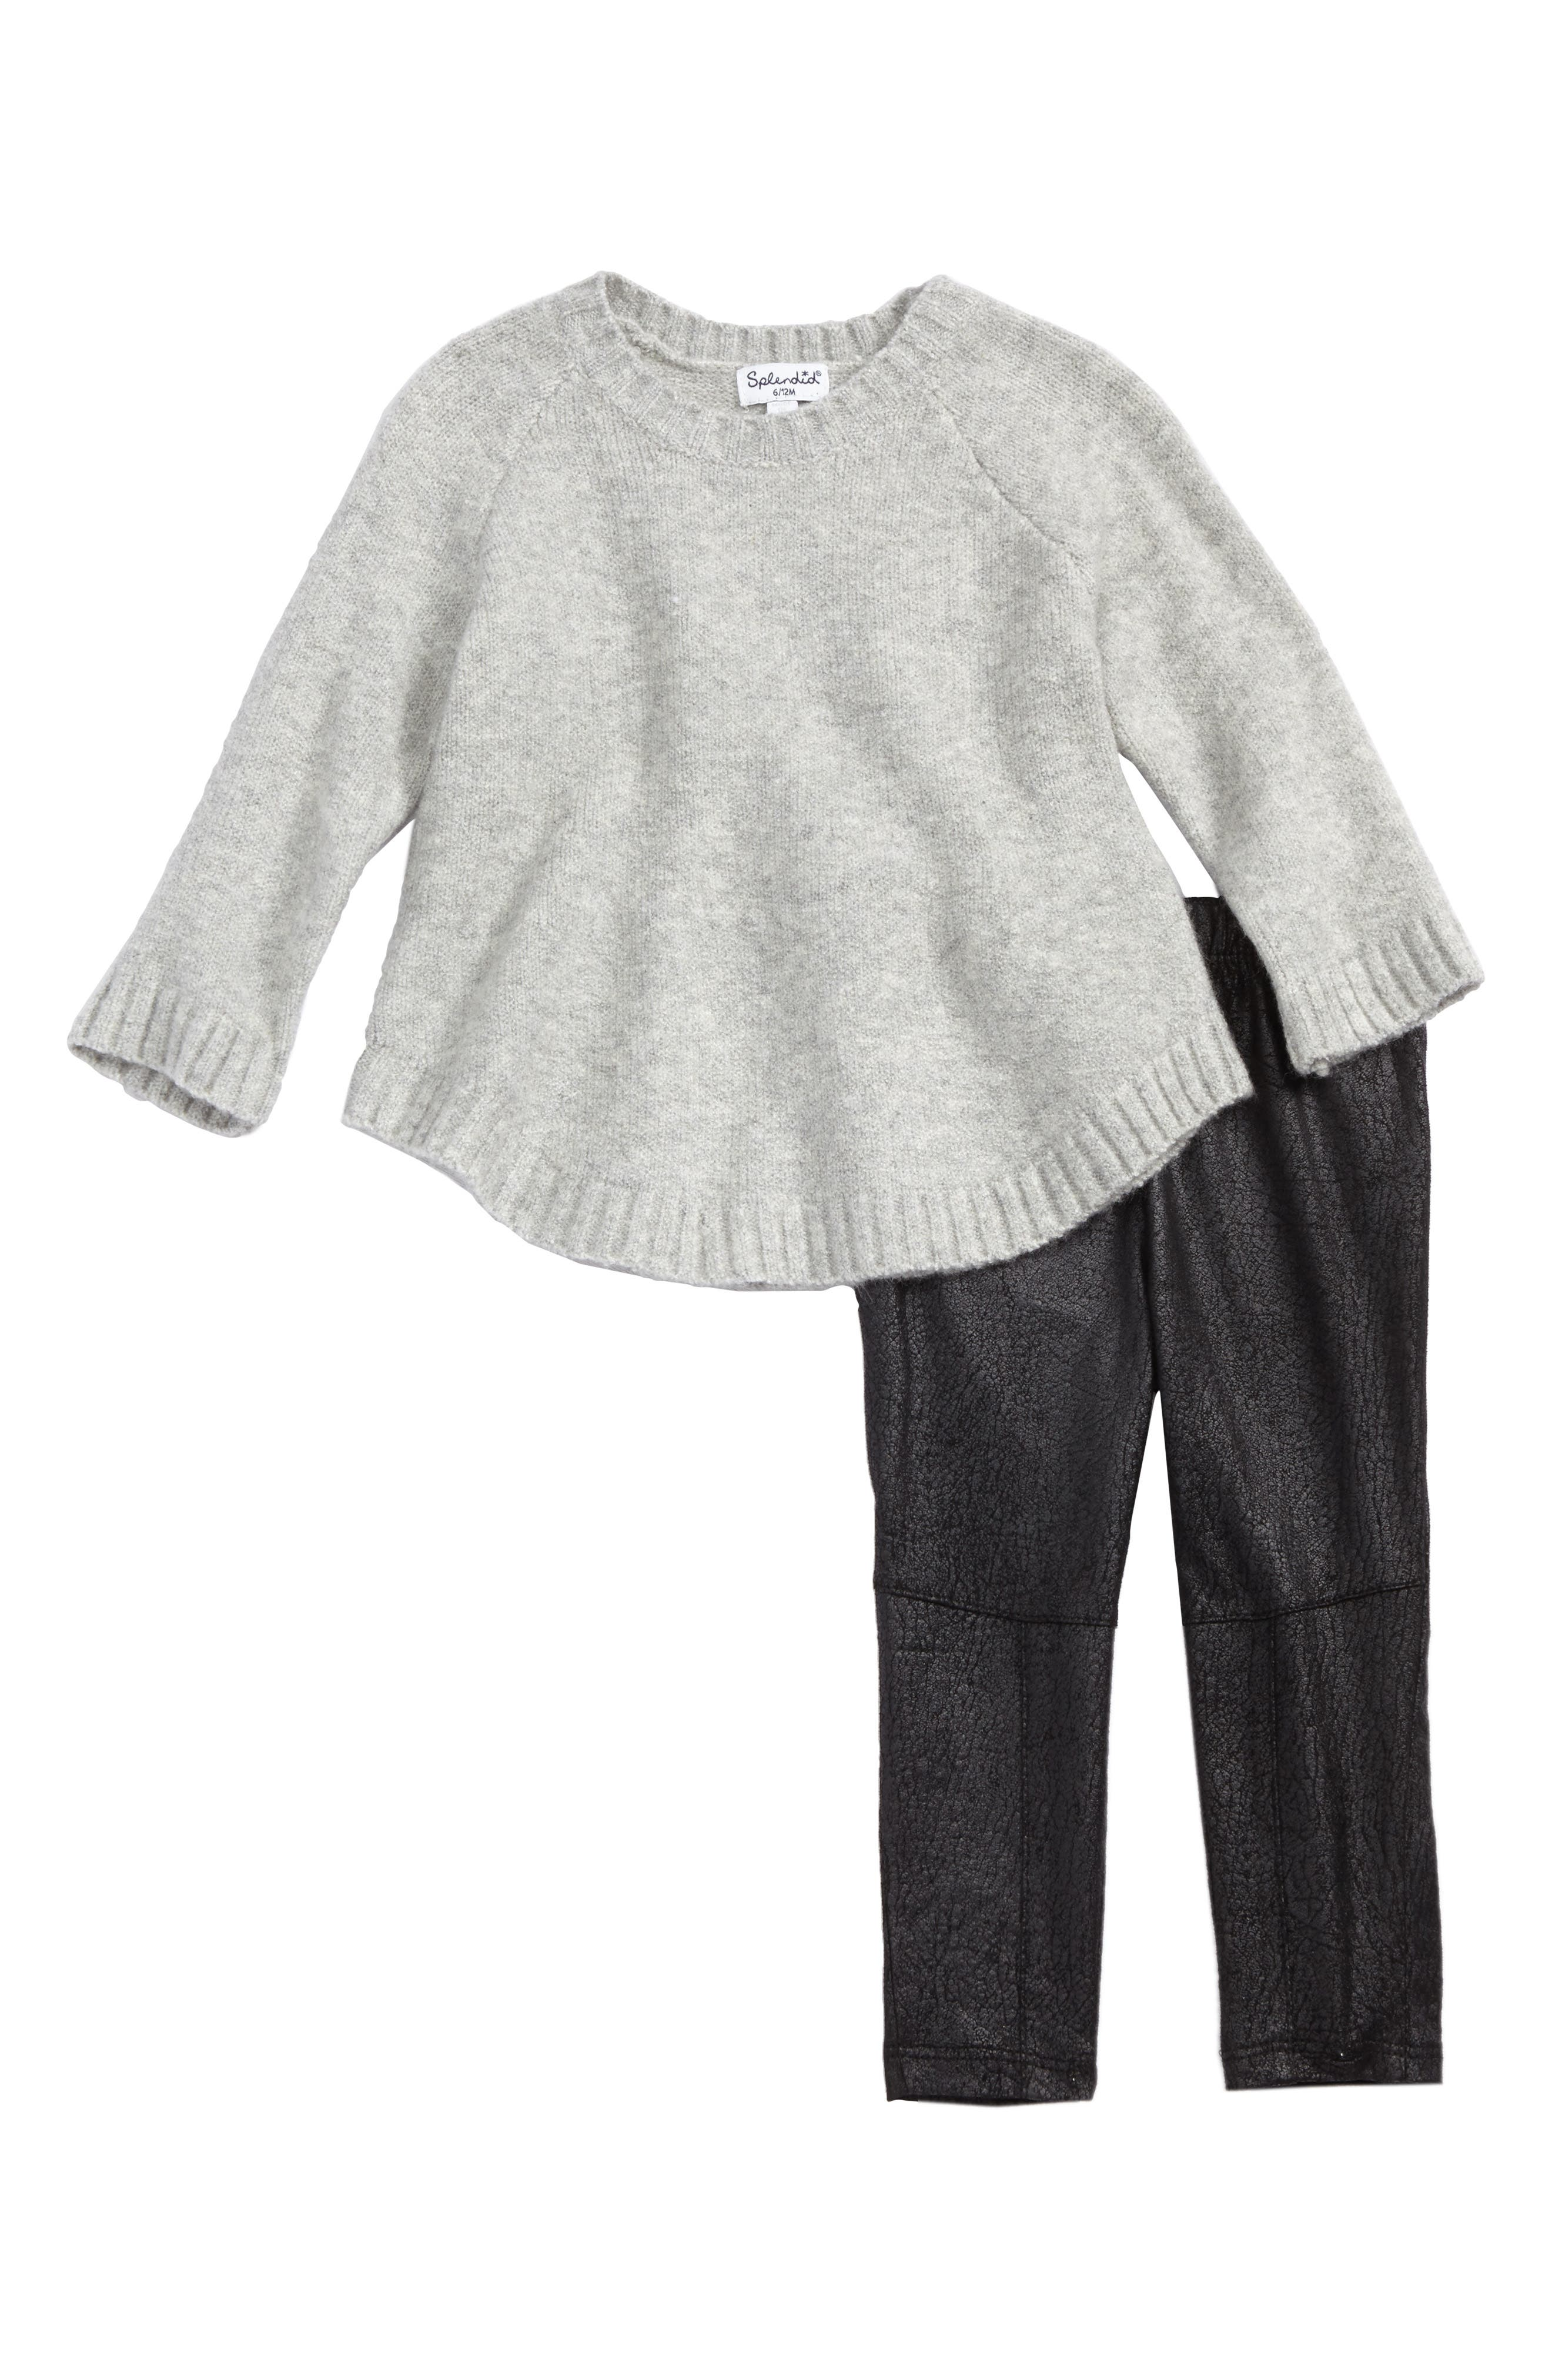 Alternate Image 1 Selected - Splendid Sweater and Faux Leather Leggings Set (Baby Girls)